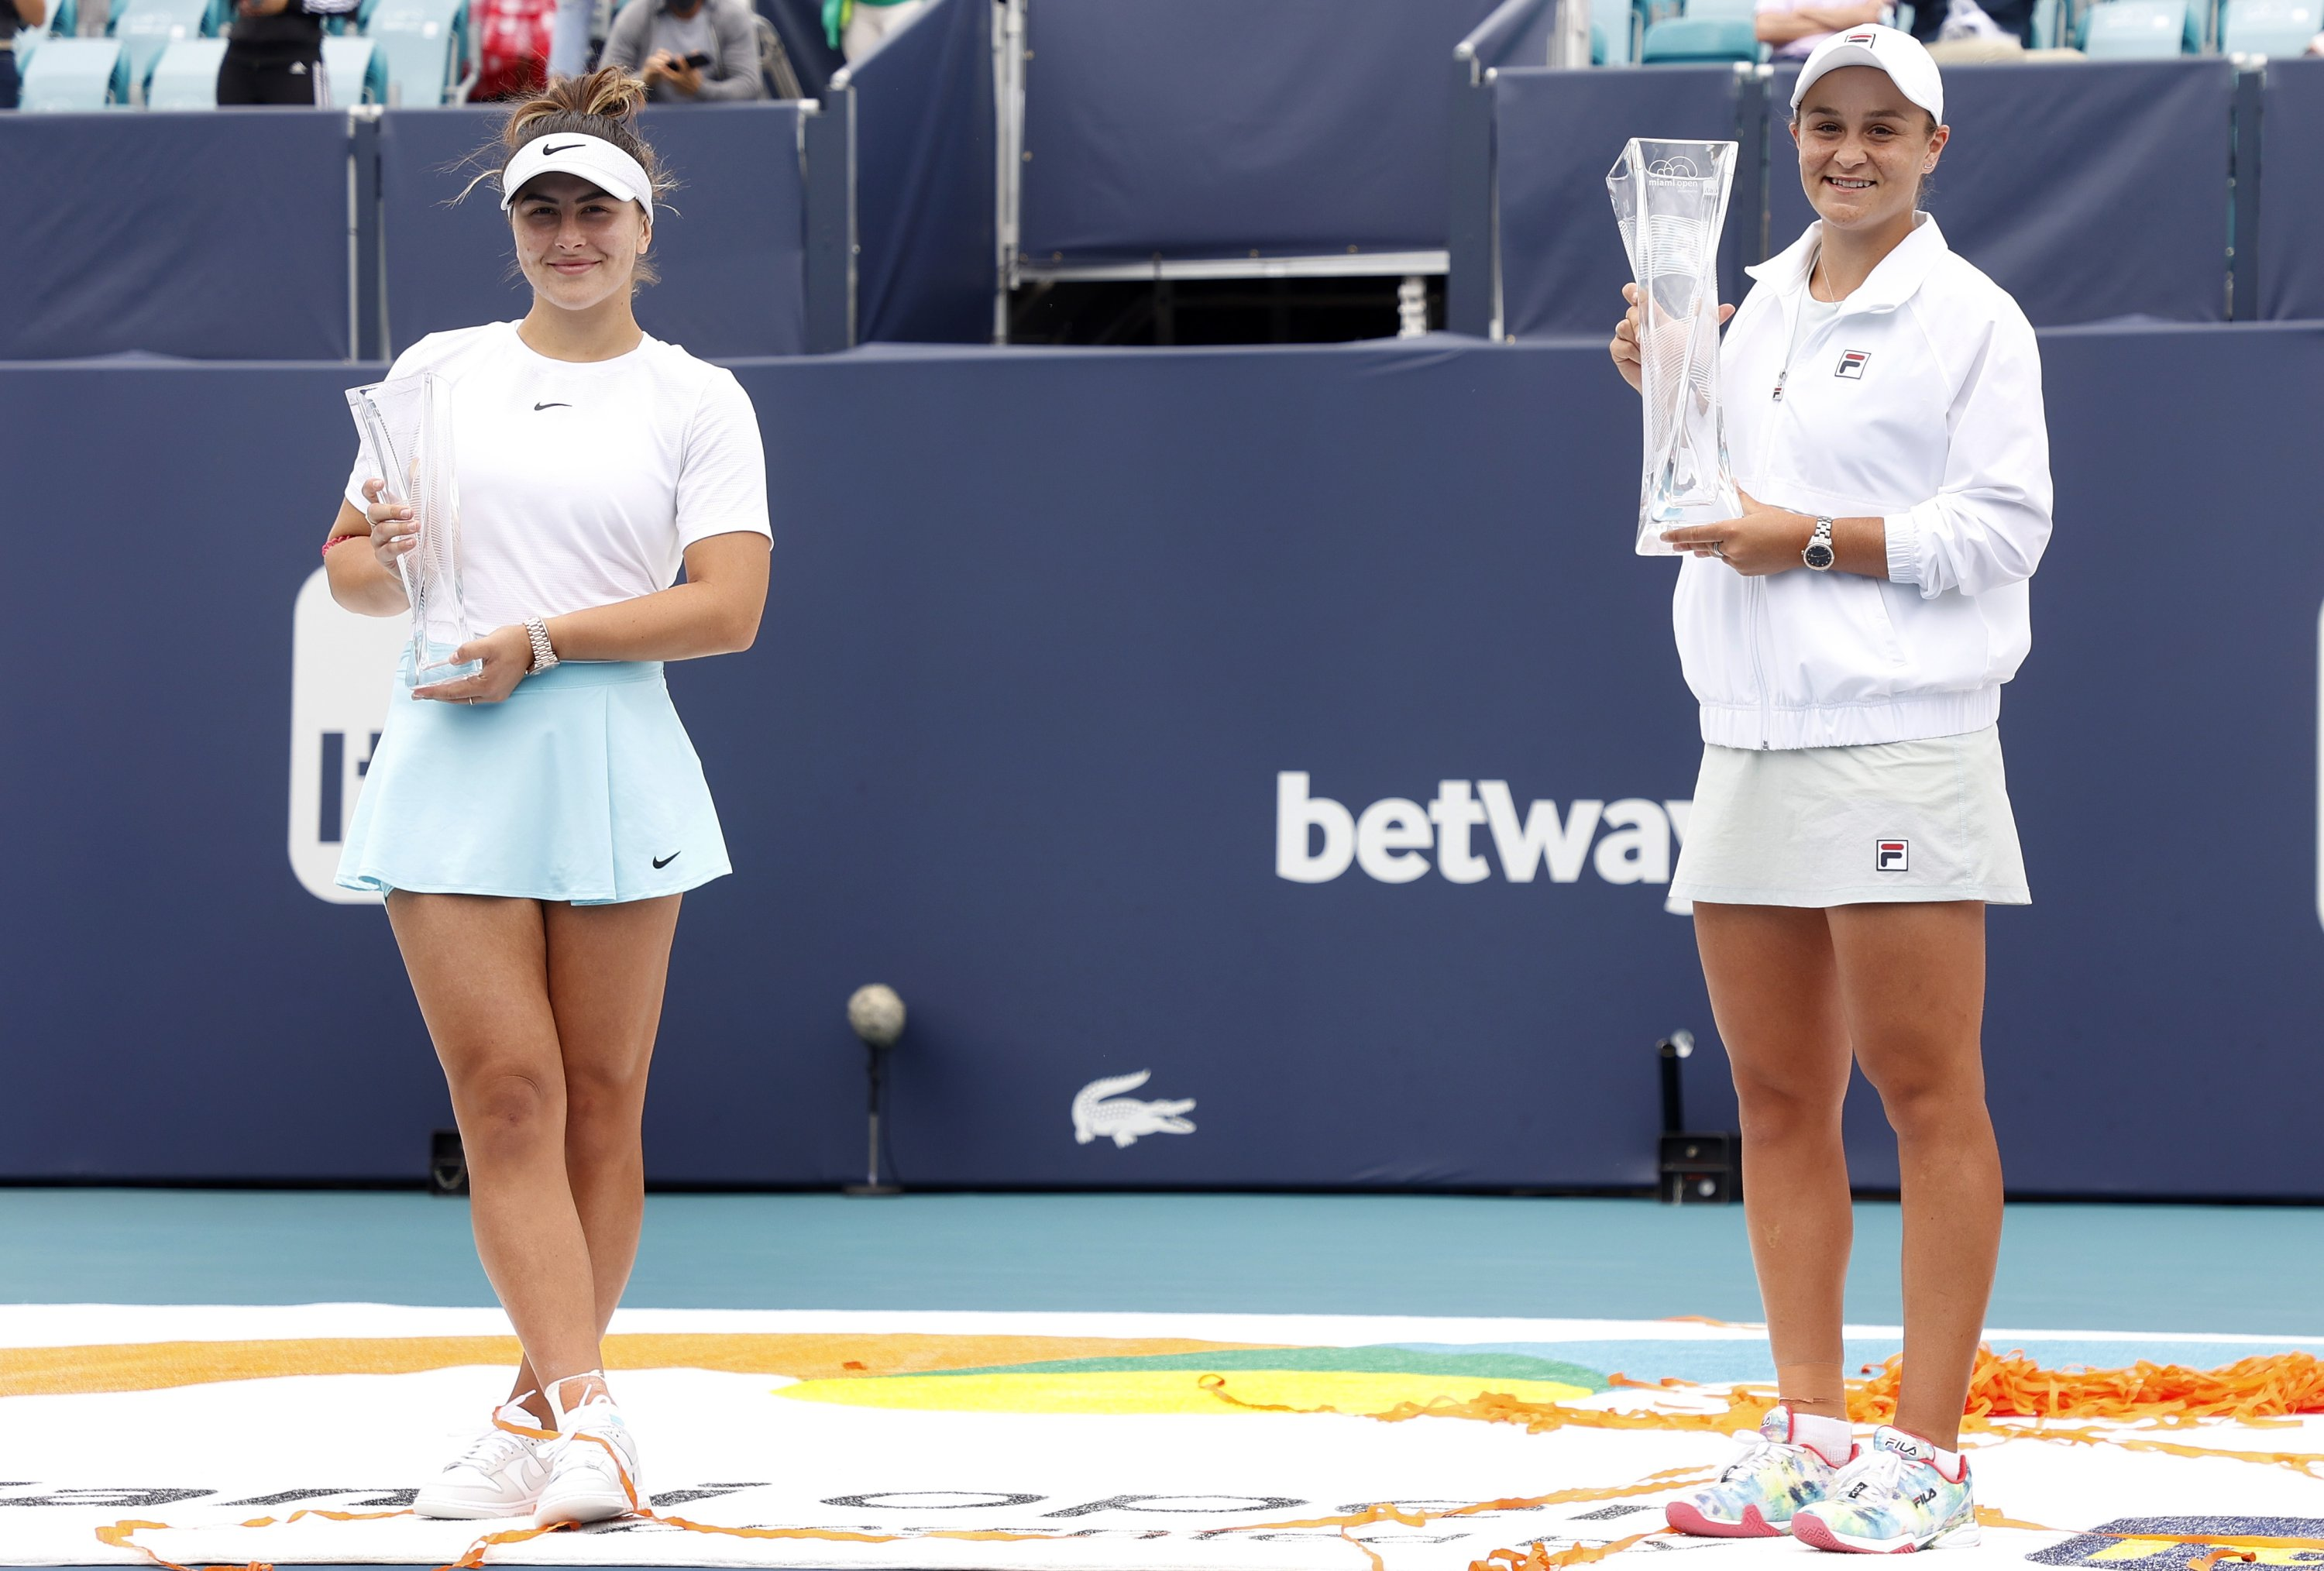 Ashleigh Barty (R) of Australia and Bianca Andreescu of Canada hold their trophies following their Women's singles finals match at the Miami Open tennis tournament in Miami Gardens, Florida, U.S., April 03, 2021. (EPA Photo)